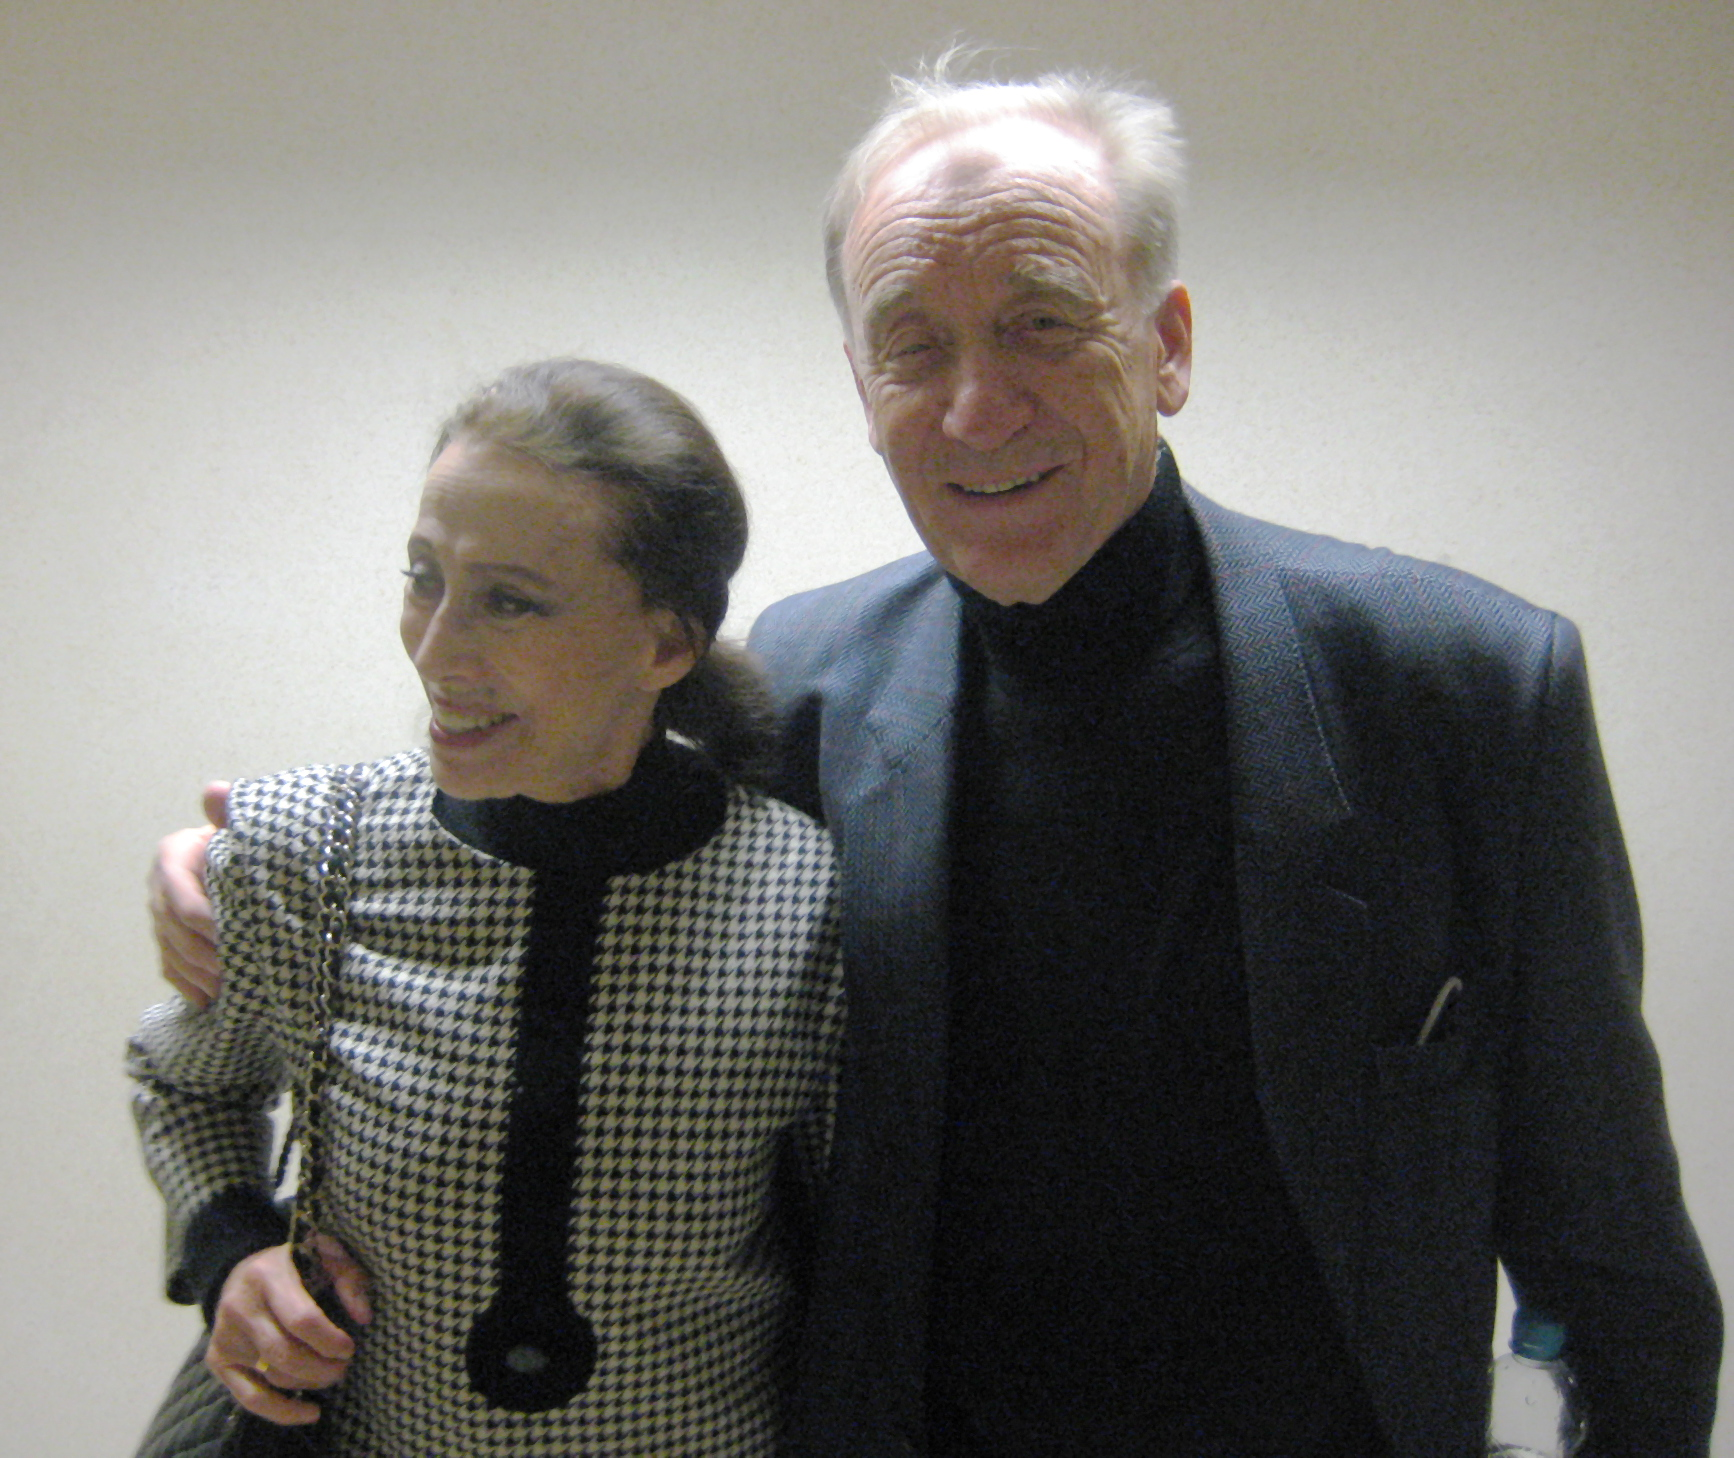 Rodion Shchedrin with his wife, Maya Plisetskaya, in 2009. Photo from Wikipedia, the free encyclopedia